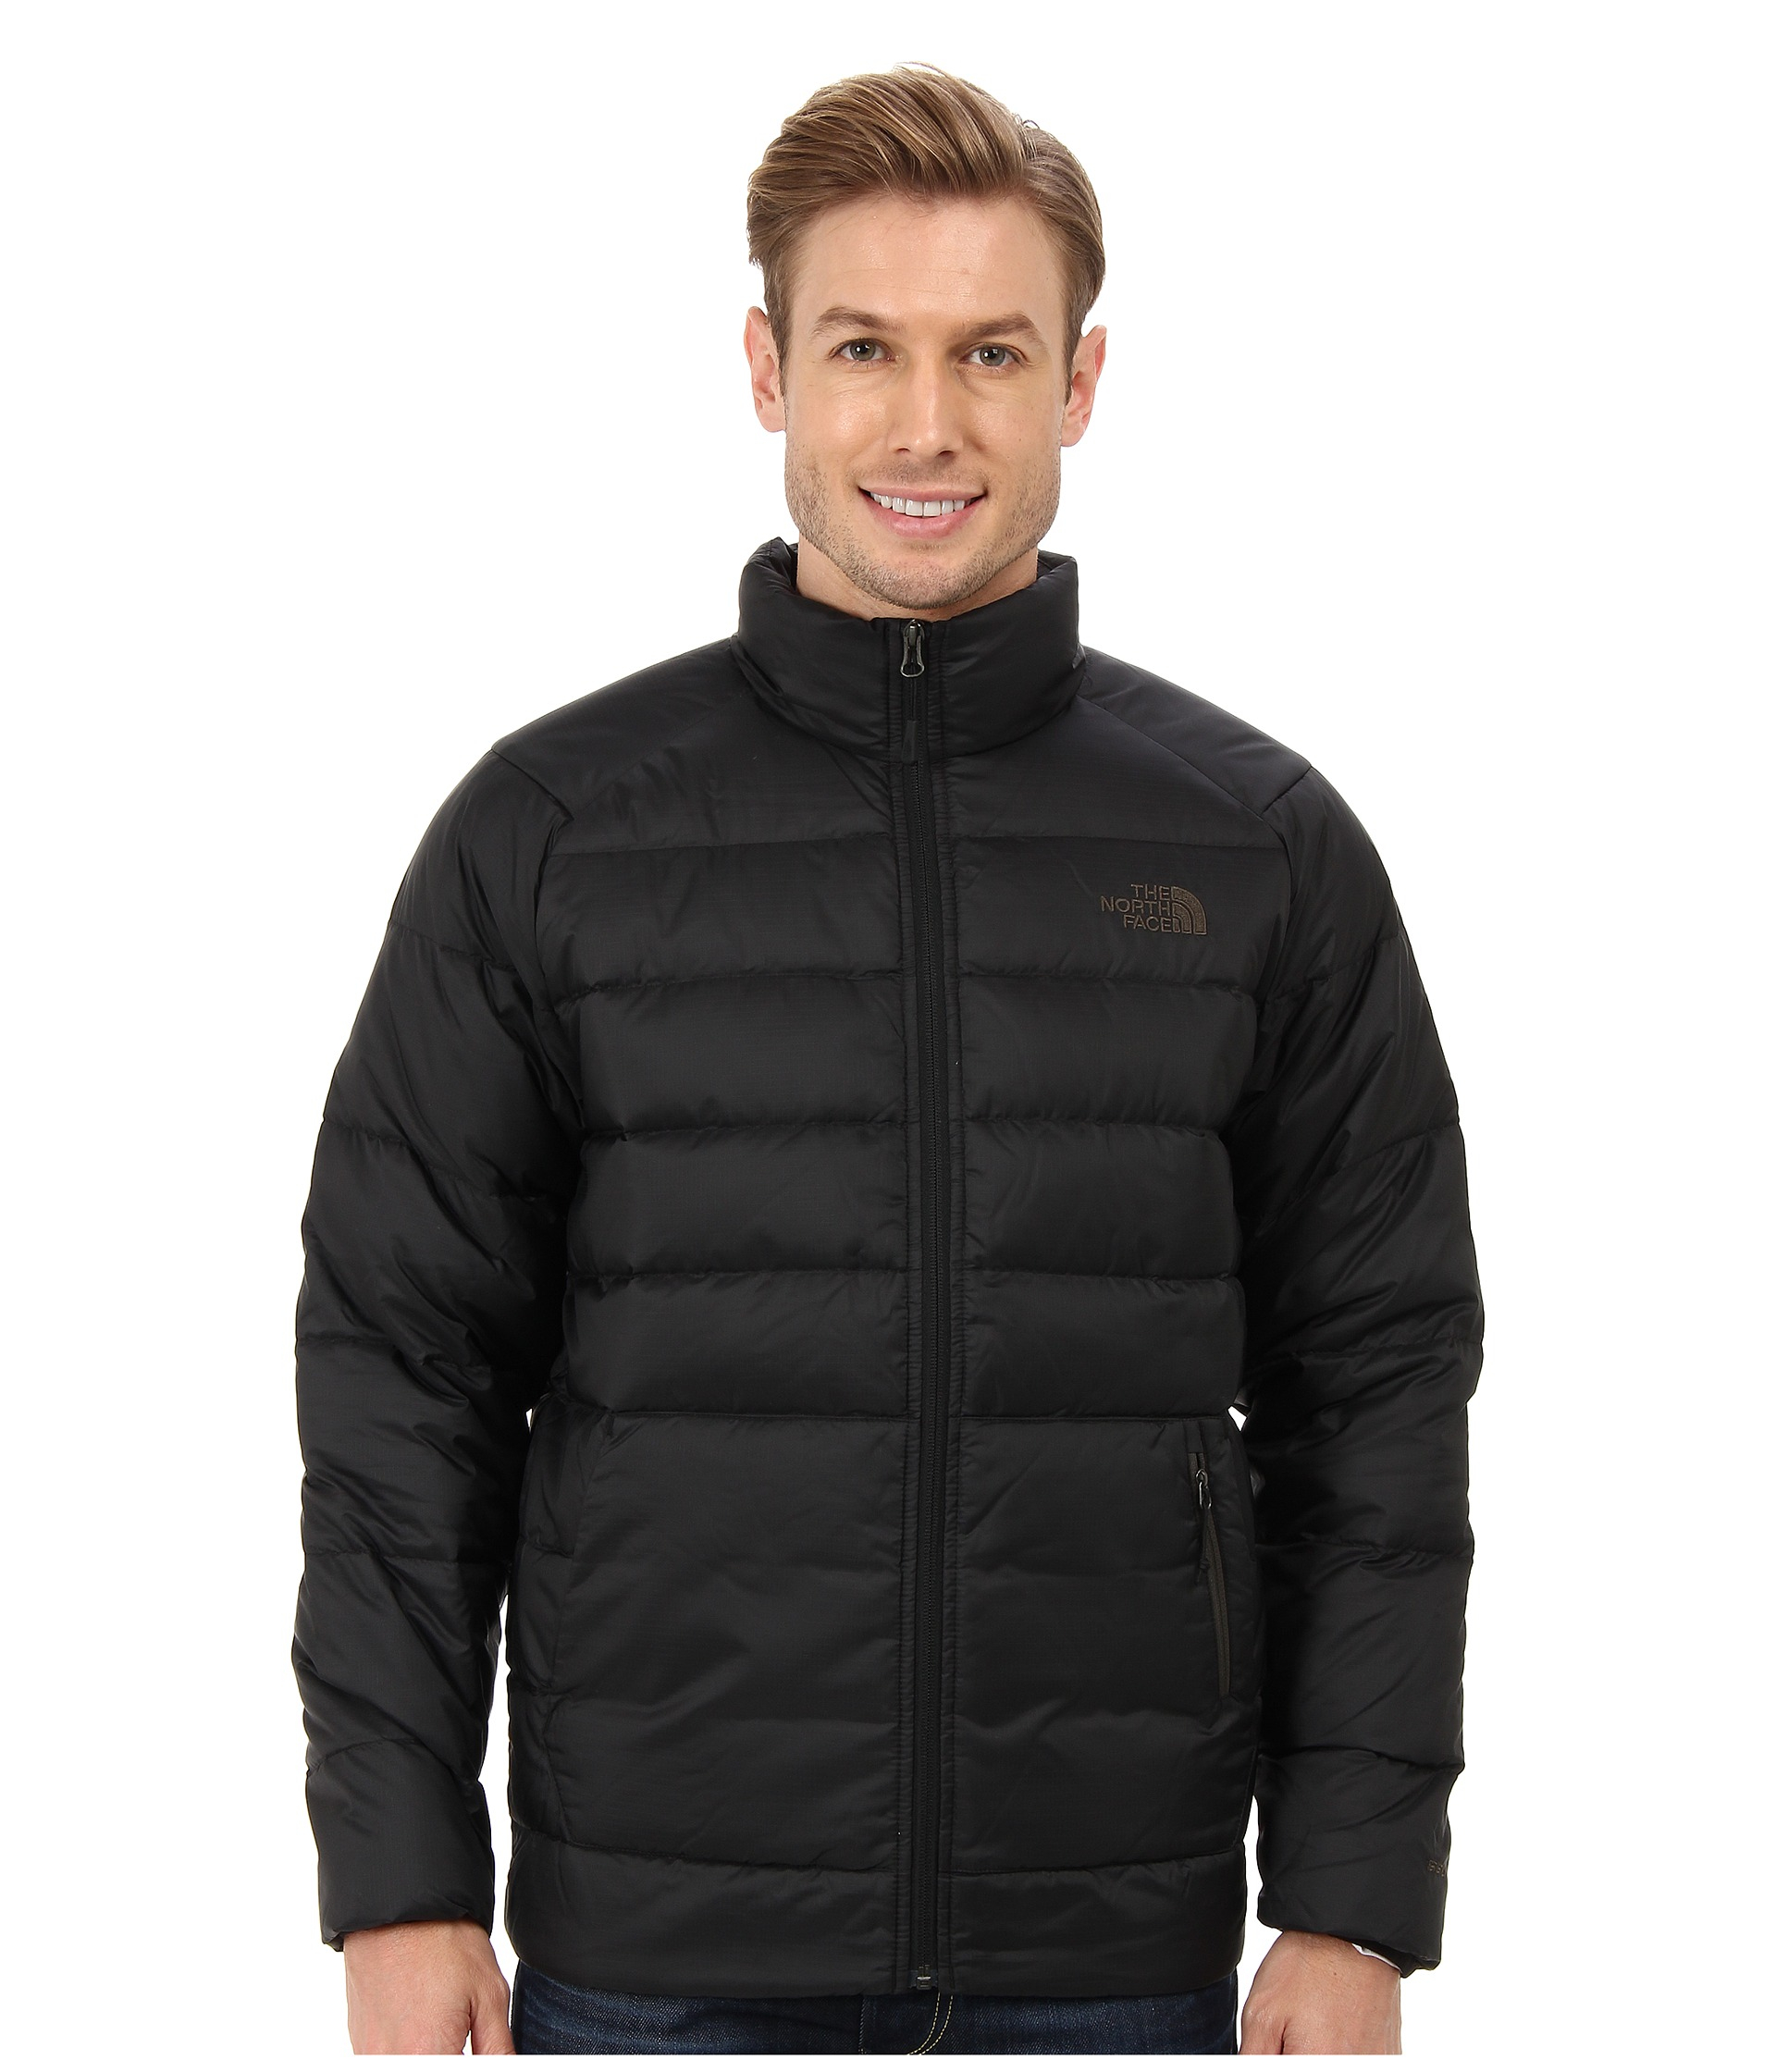 Lyst - The North Face Aconcagua Jacket in Black for Men 11a70d9c1